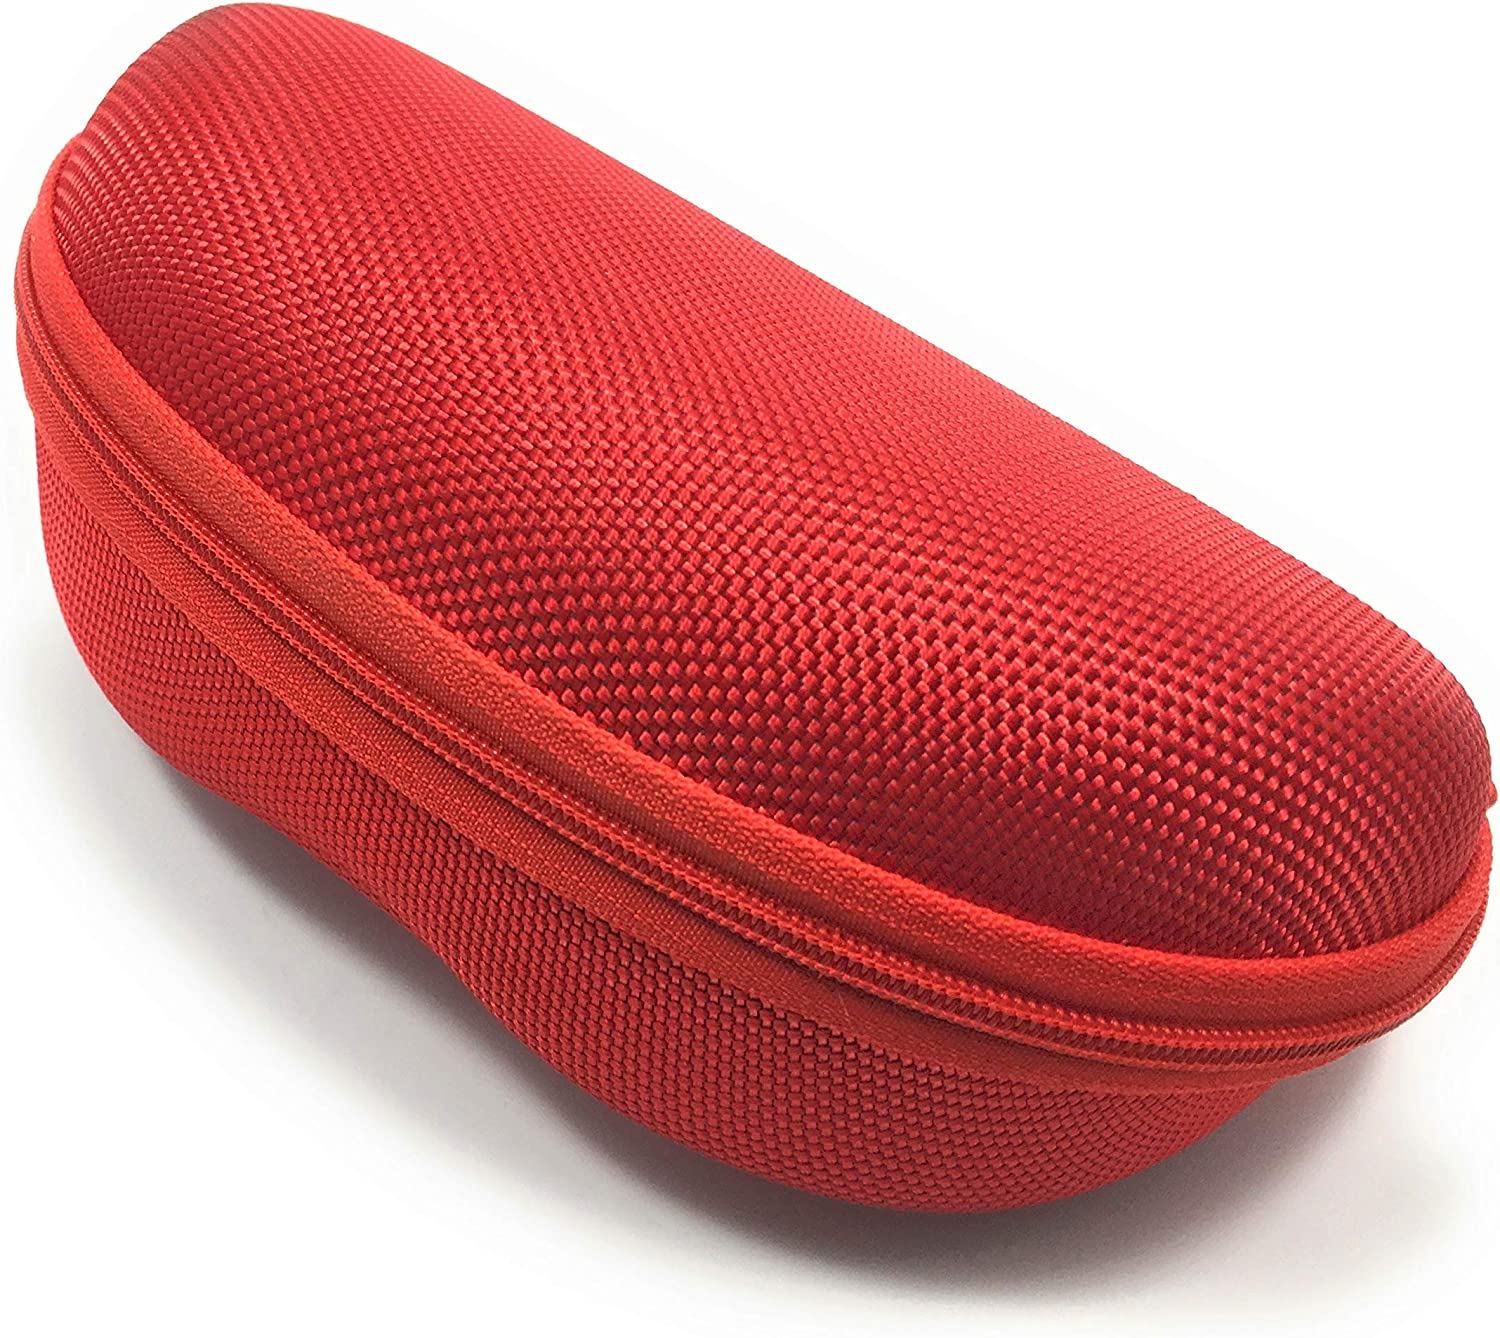 Sunglass Cases for Sports Size Sunglasses and Safety Glasses Perfect for Curved Frames